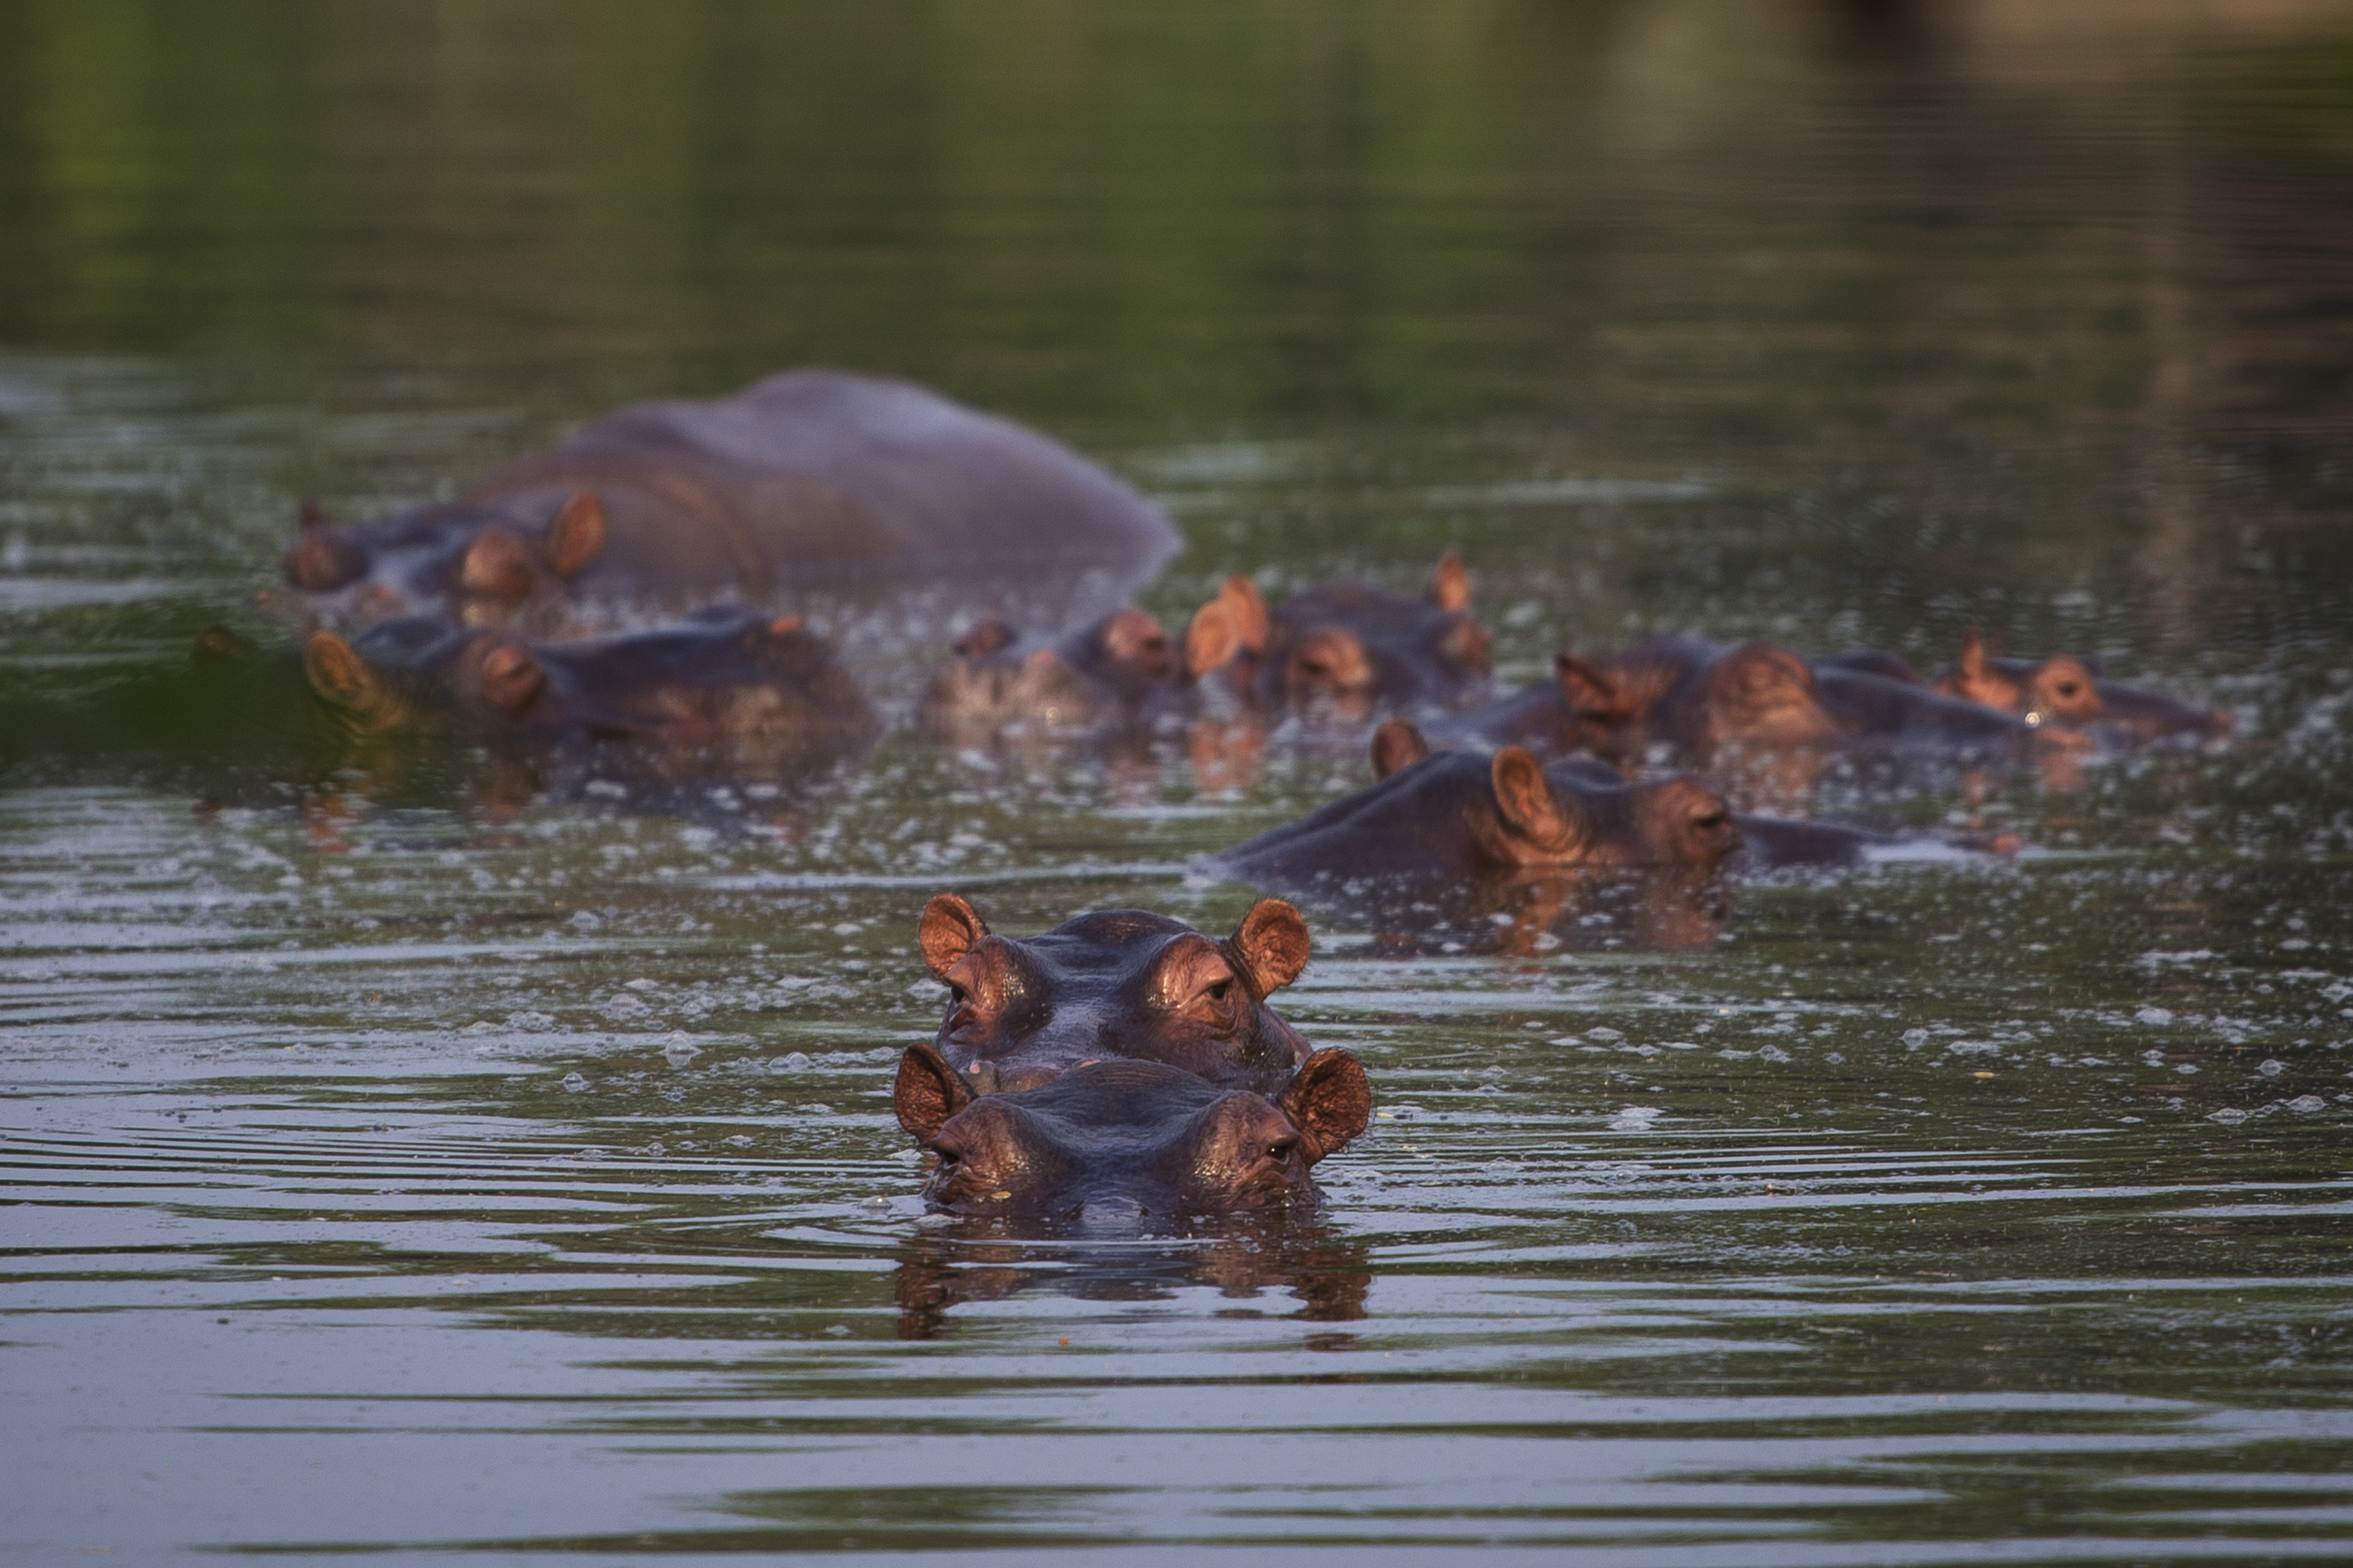 The hippos were originally brought to Colombia by the late drug baron Pablo Escobar as part of his personal zoo.